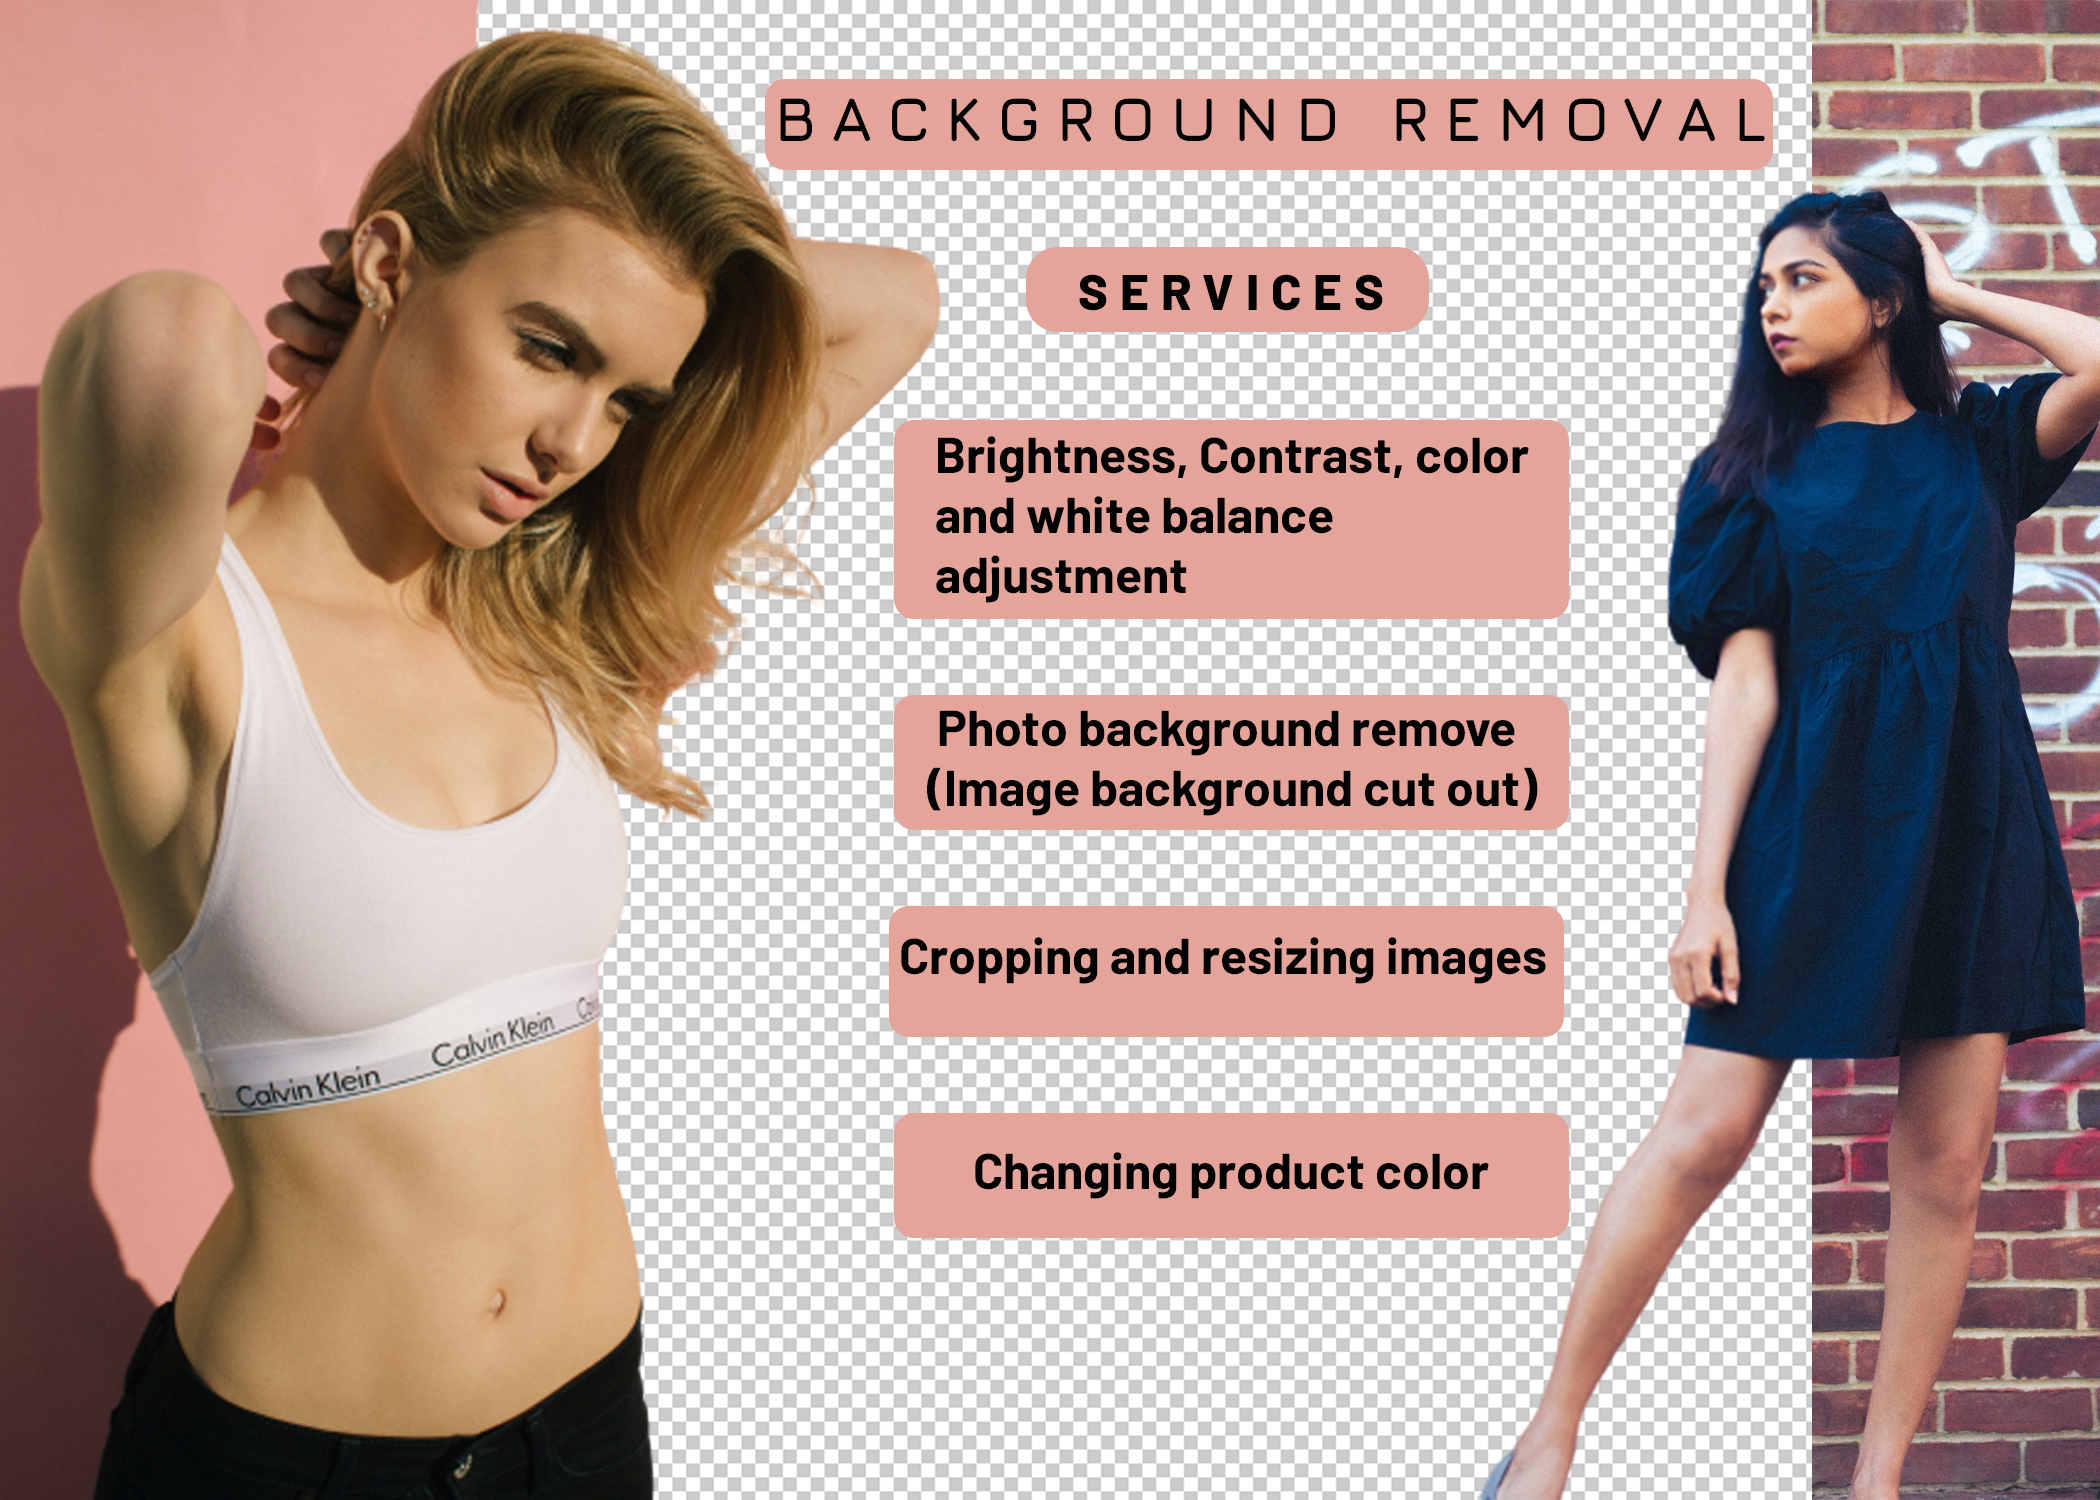 I will do Image background removal professionally within 24 hours.